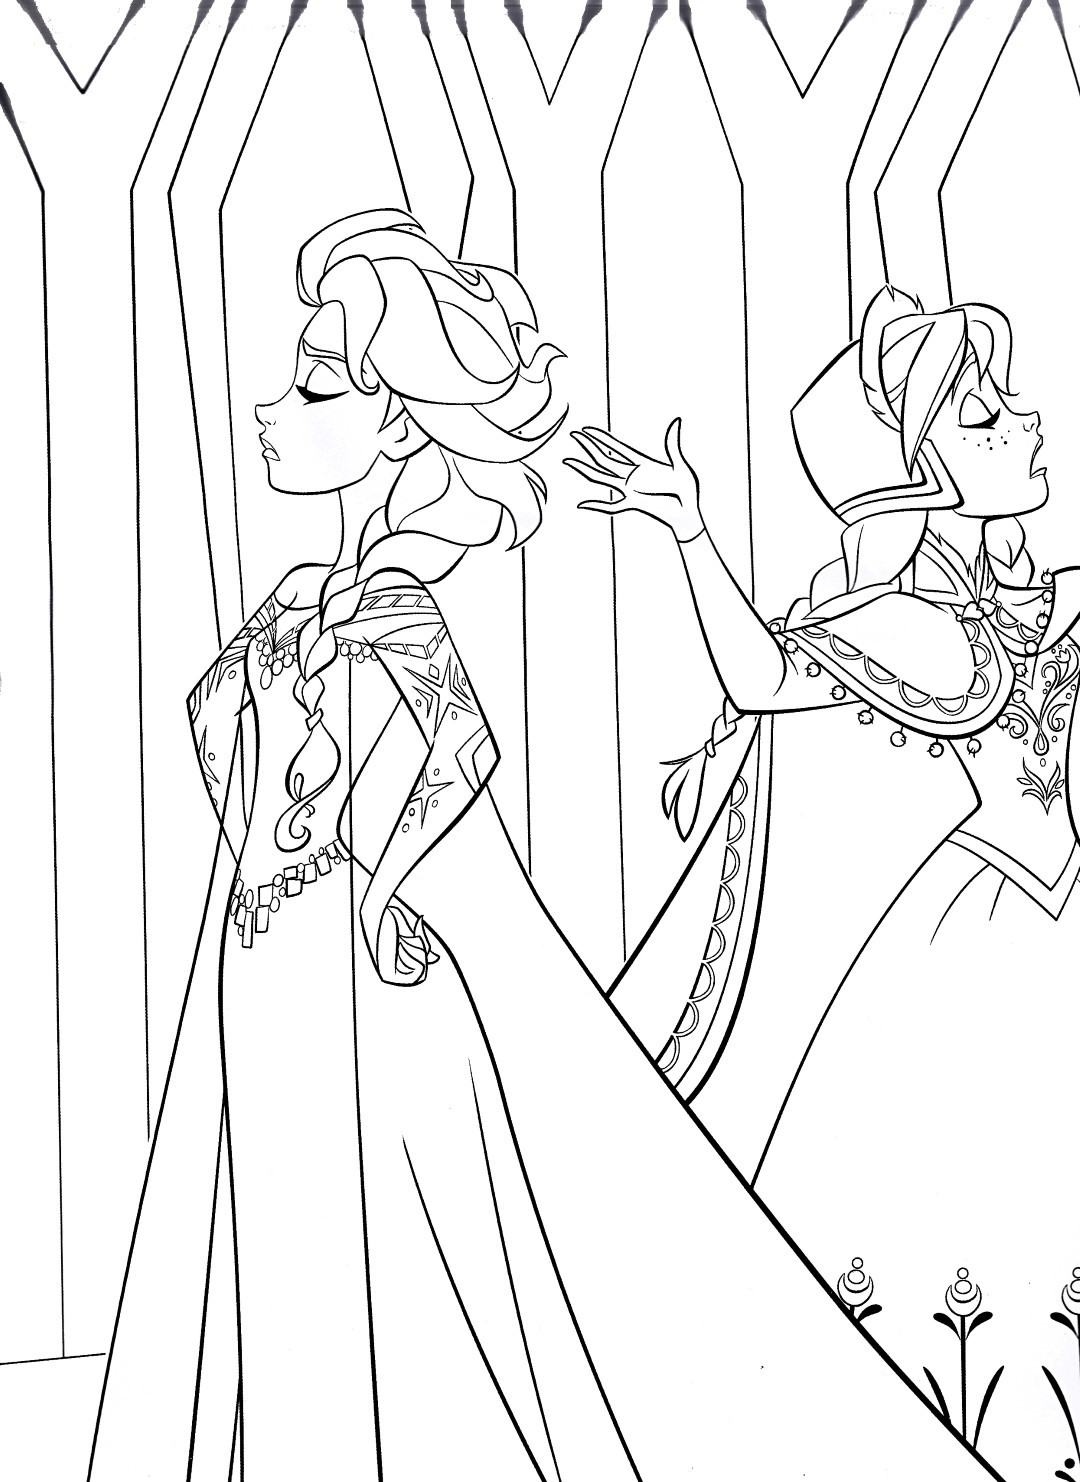 Elsa and Anna Fighting Coloring Page